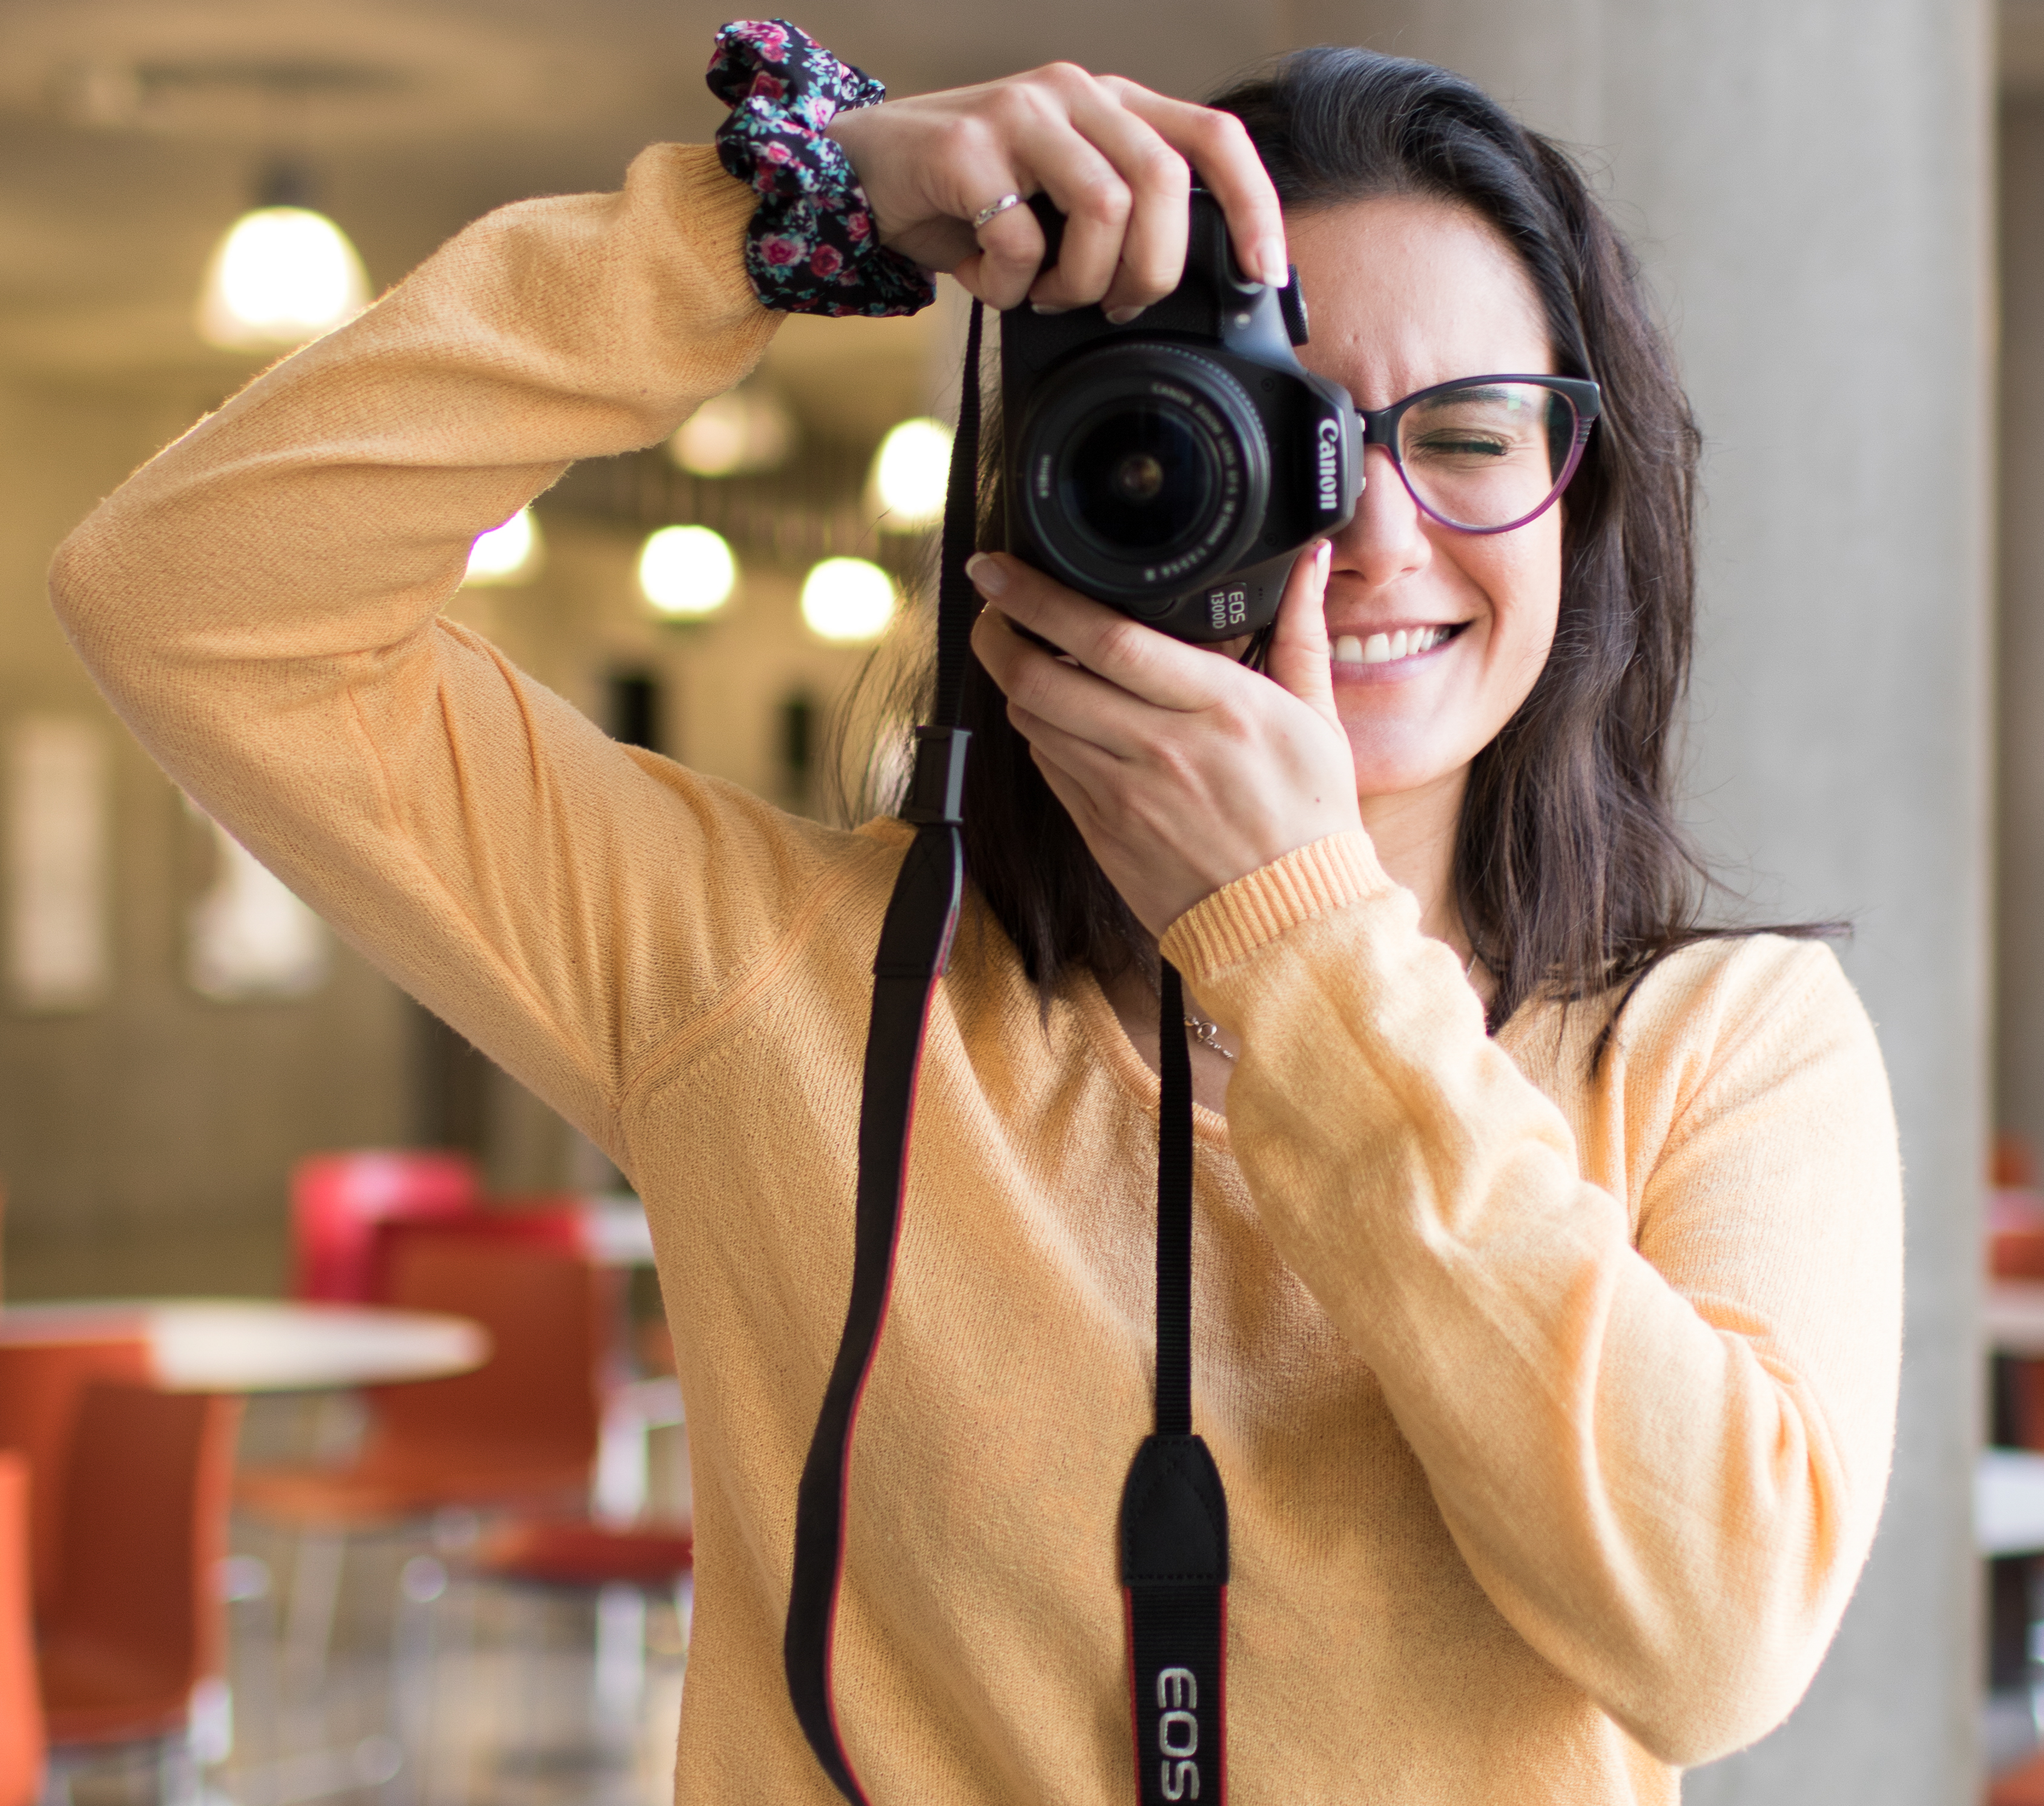 Student taking a photo